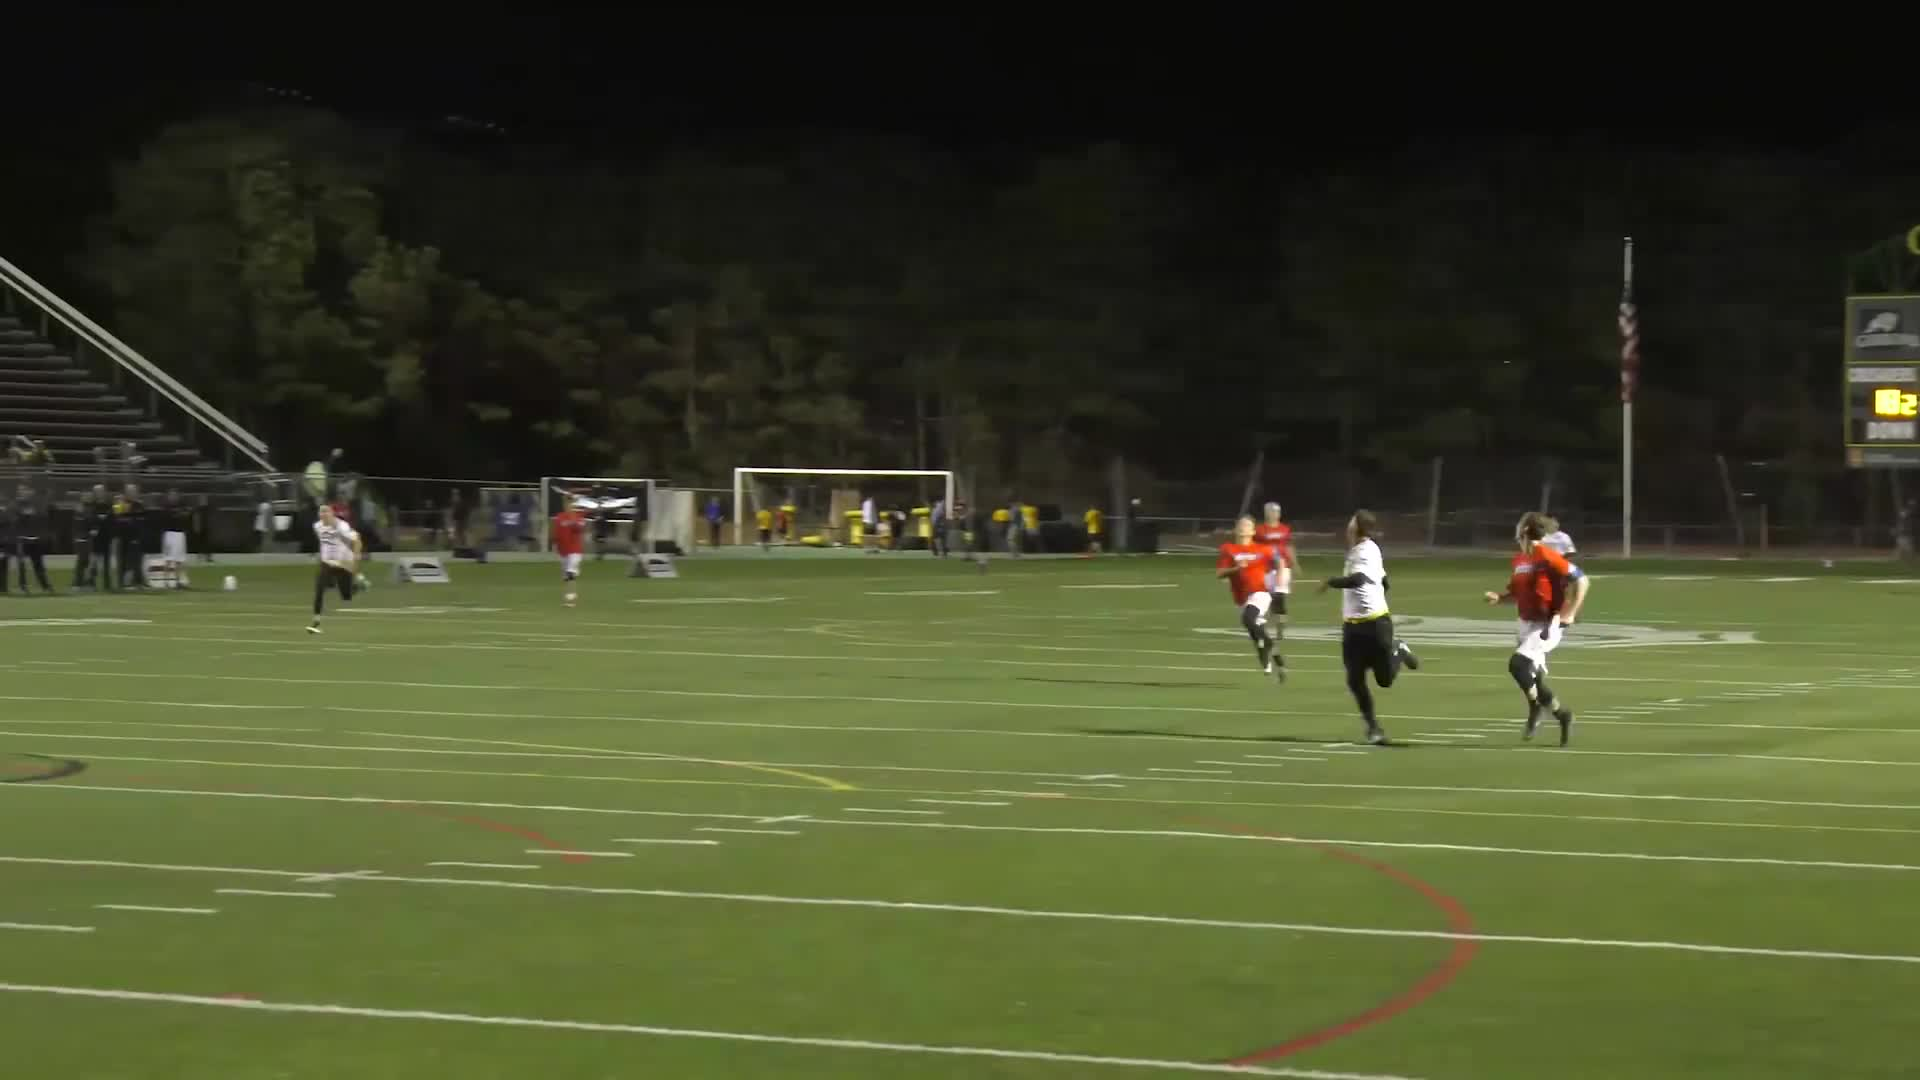 Sports, TheAUDLChannel, american ultimate disc league, audl, sports, theaudlchannel, ultimate, ultimate frisbee, Jacob Fairfax Sky Goal GIFs